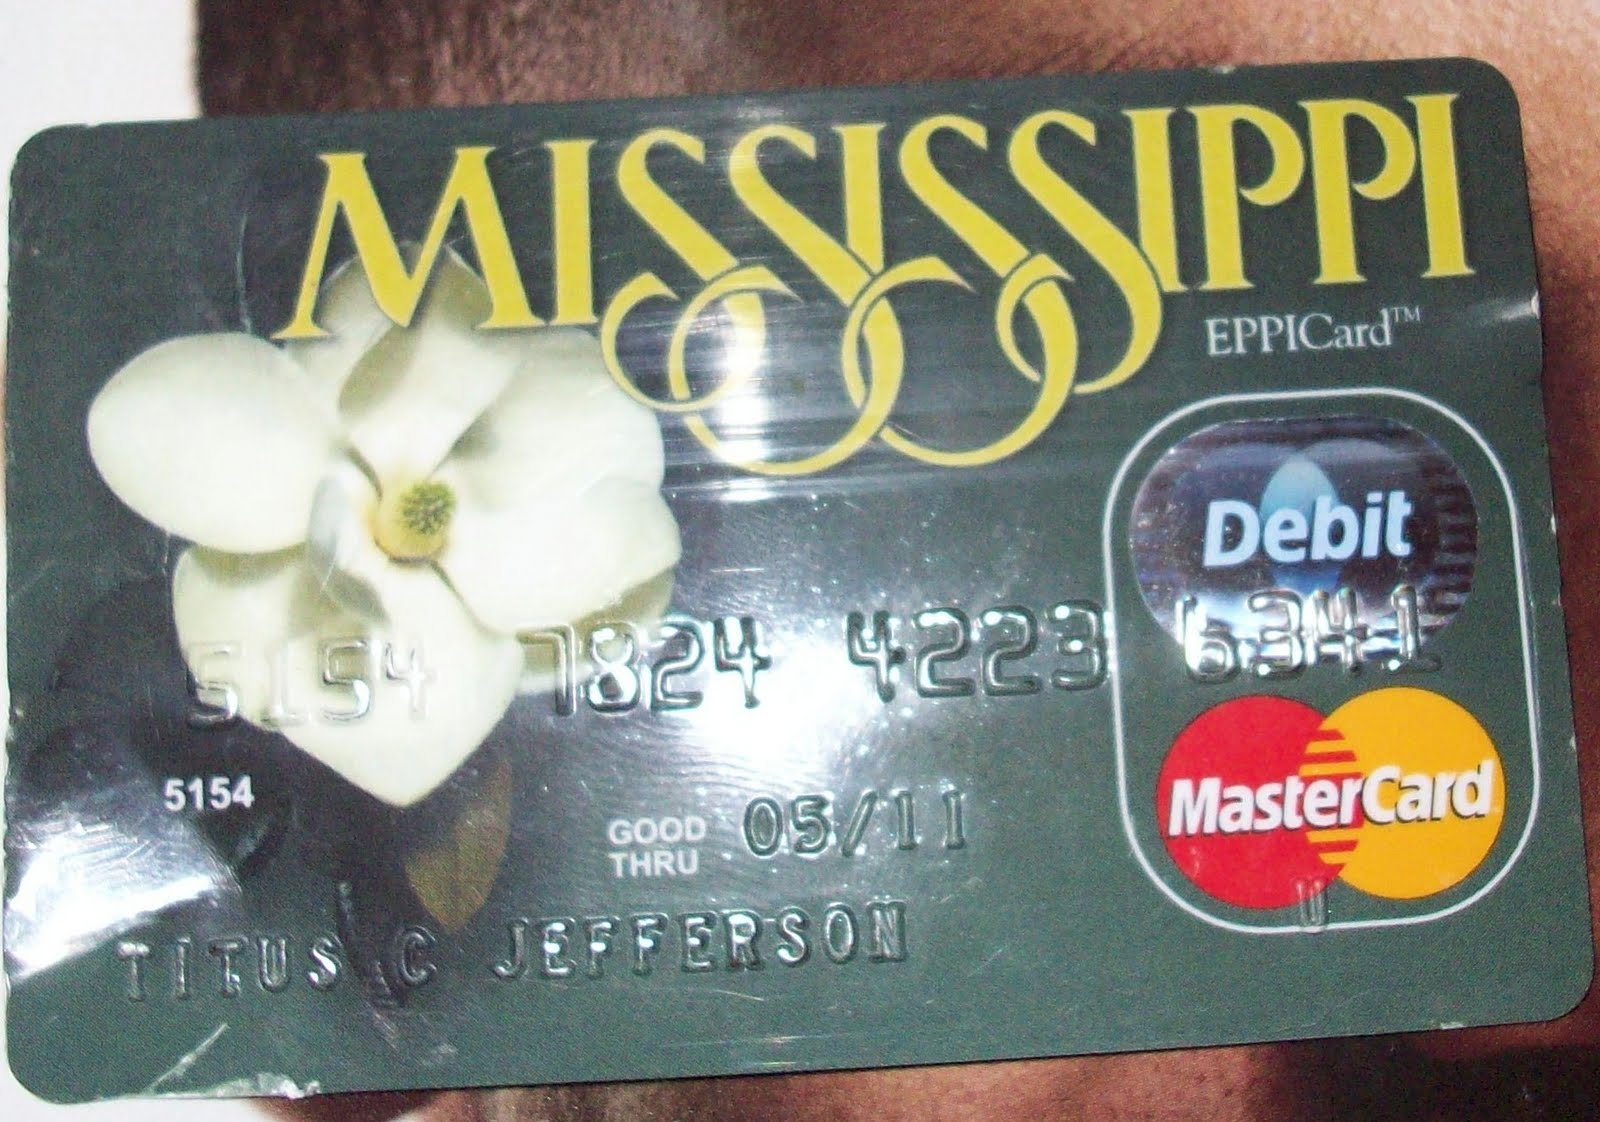 Food Stamps Mississippi Phone Number